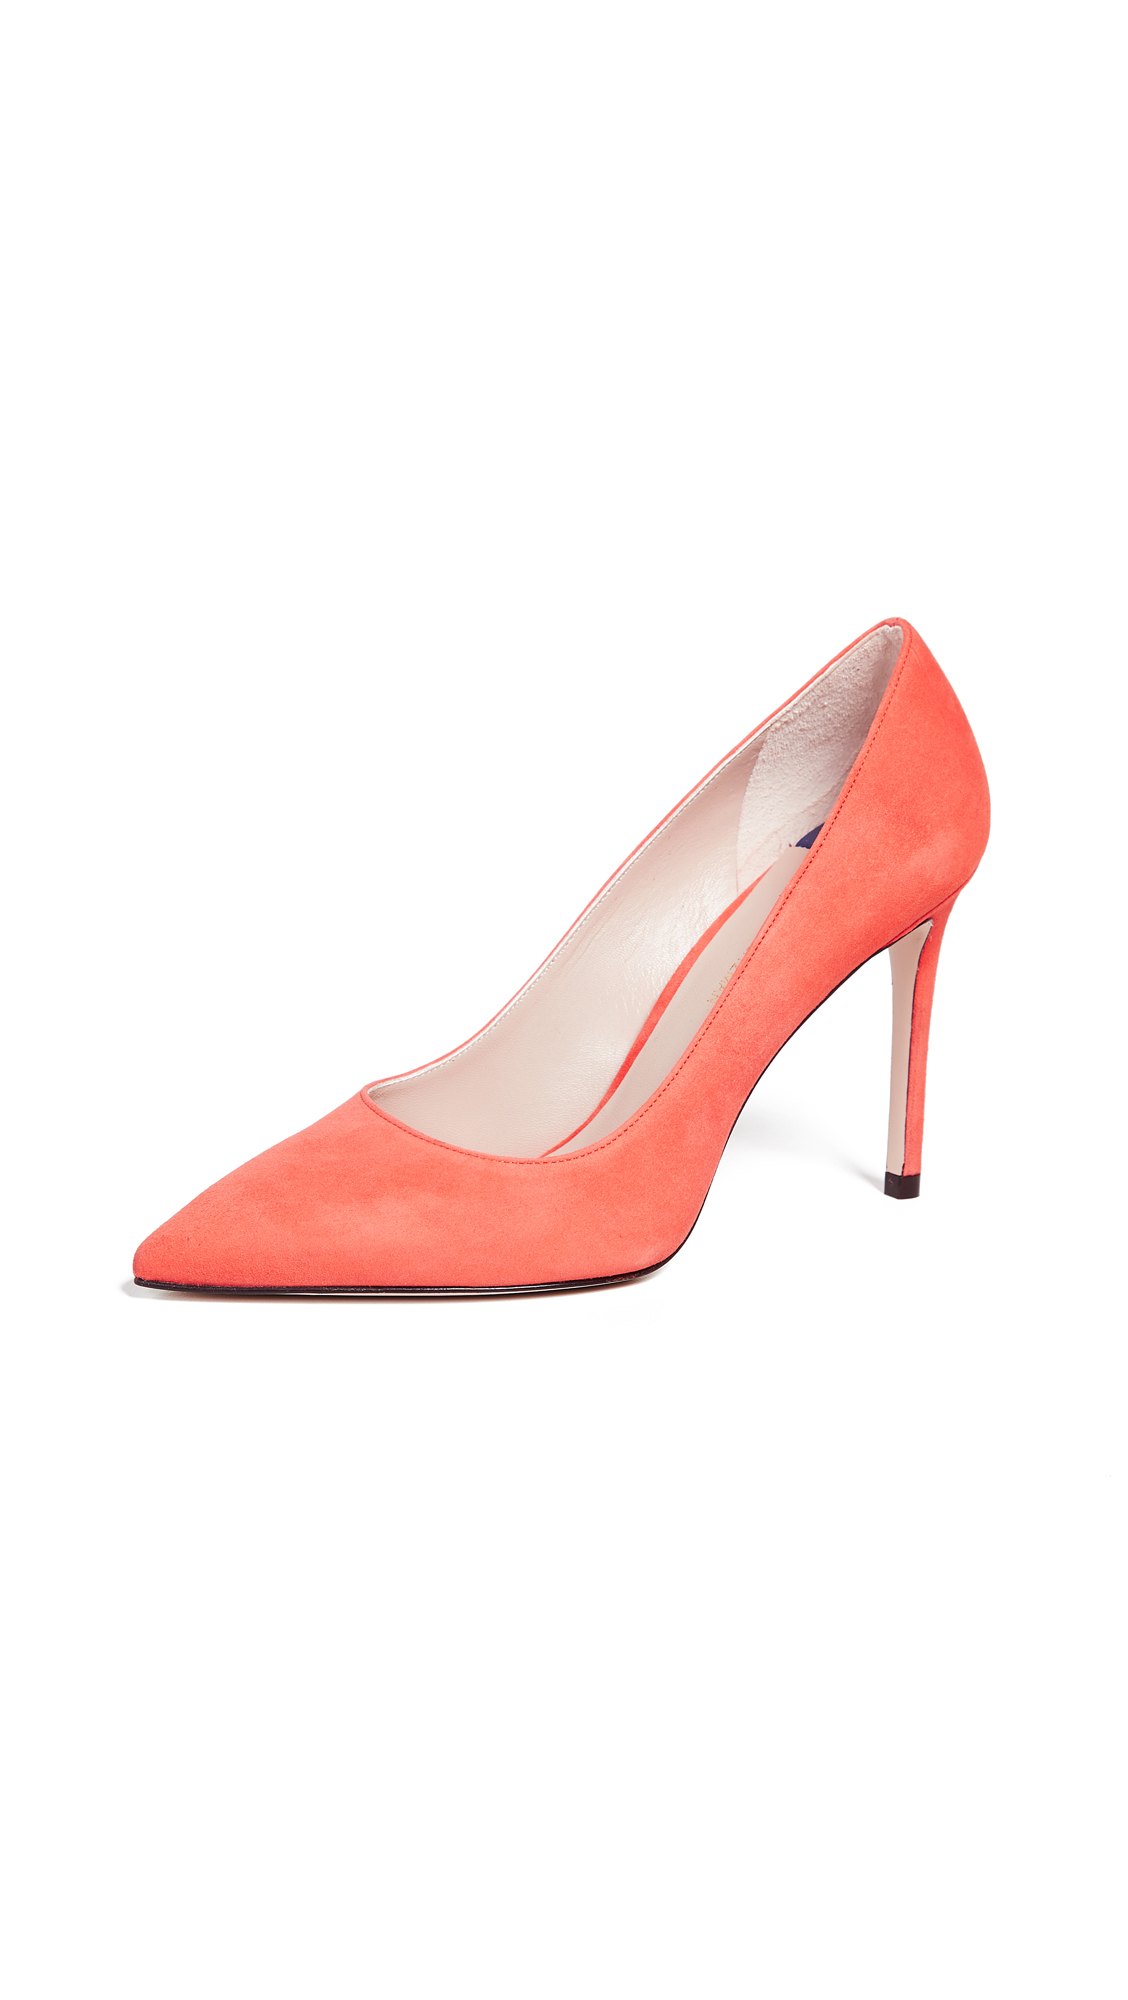 Stuart Weitzman Leigh 95mm Pumps - Fire